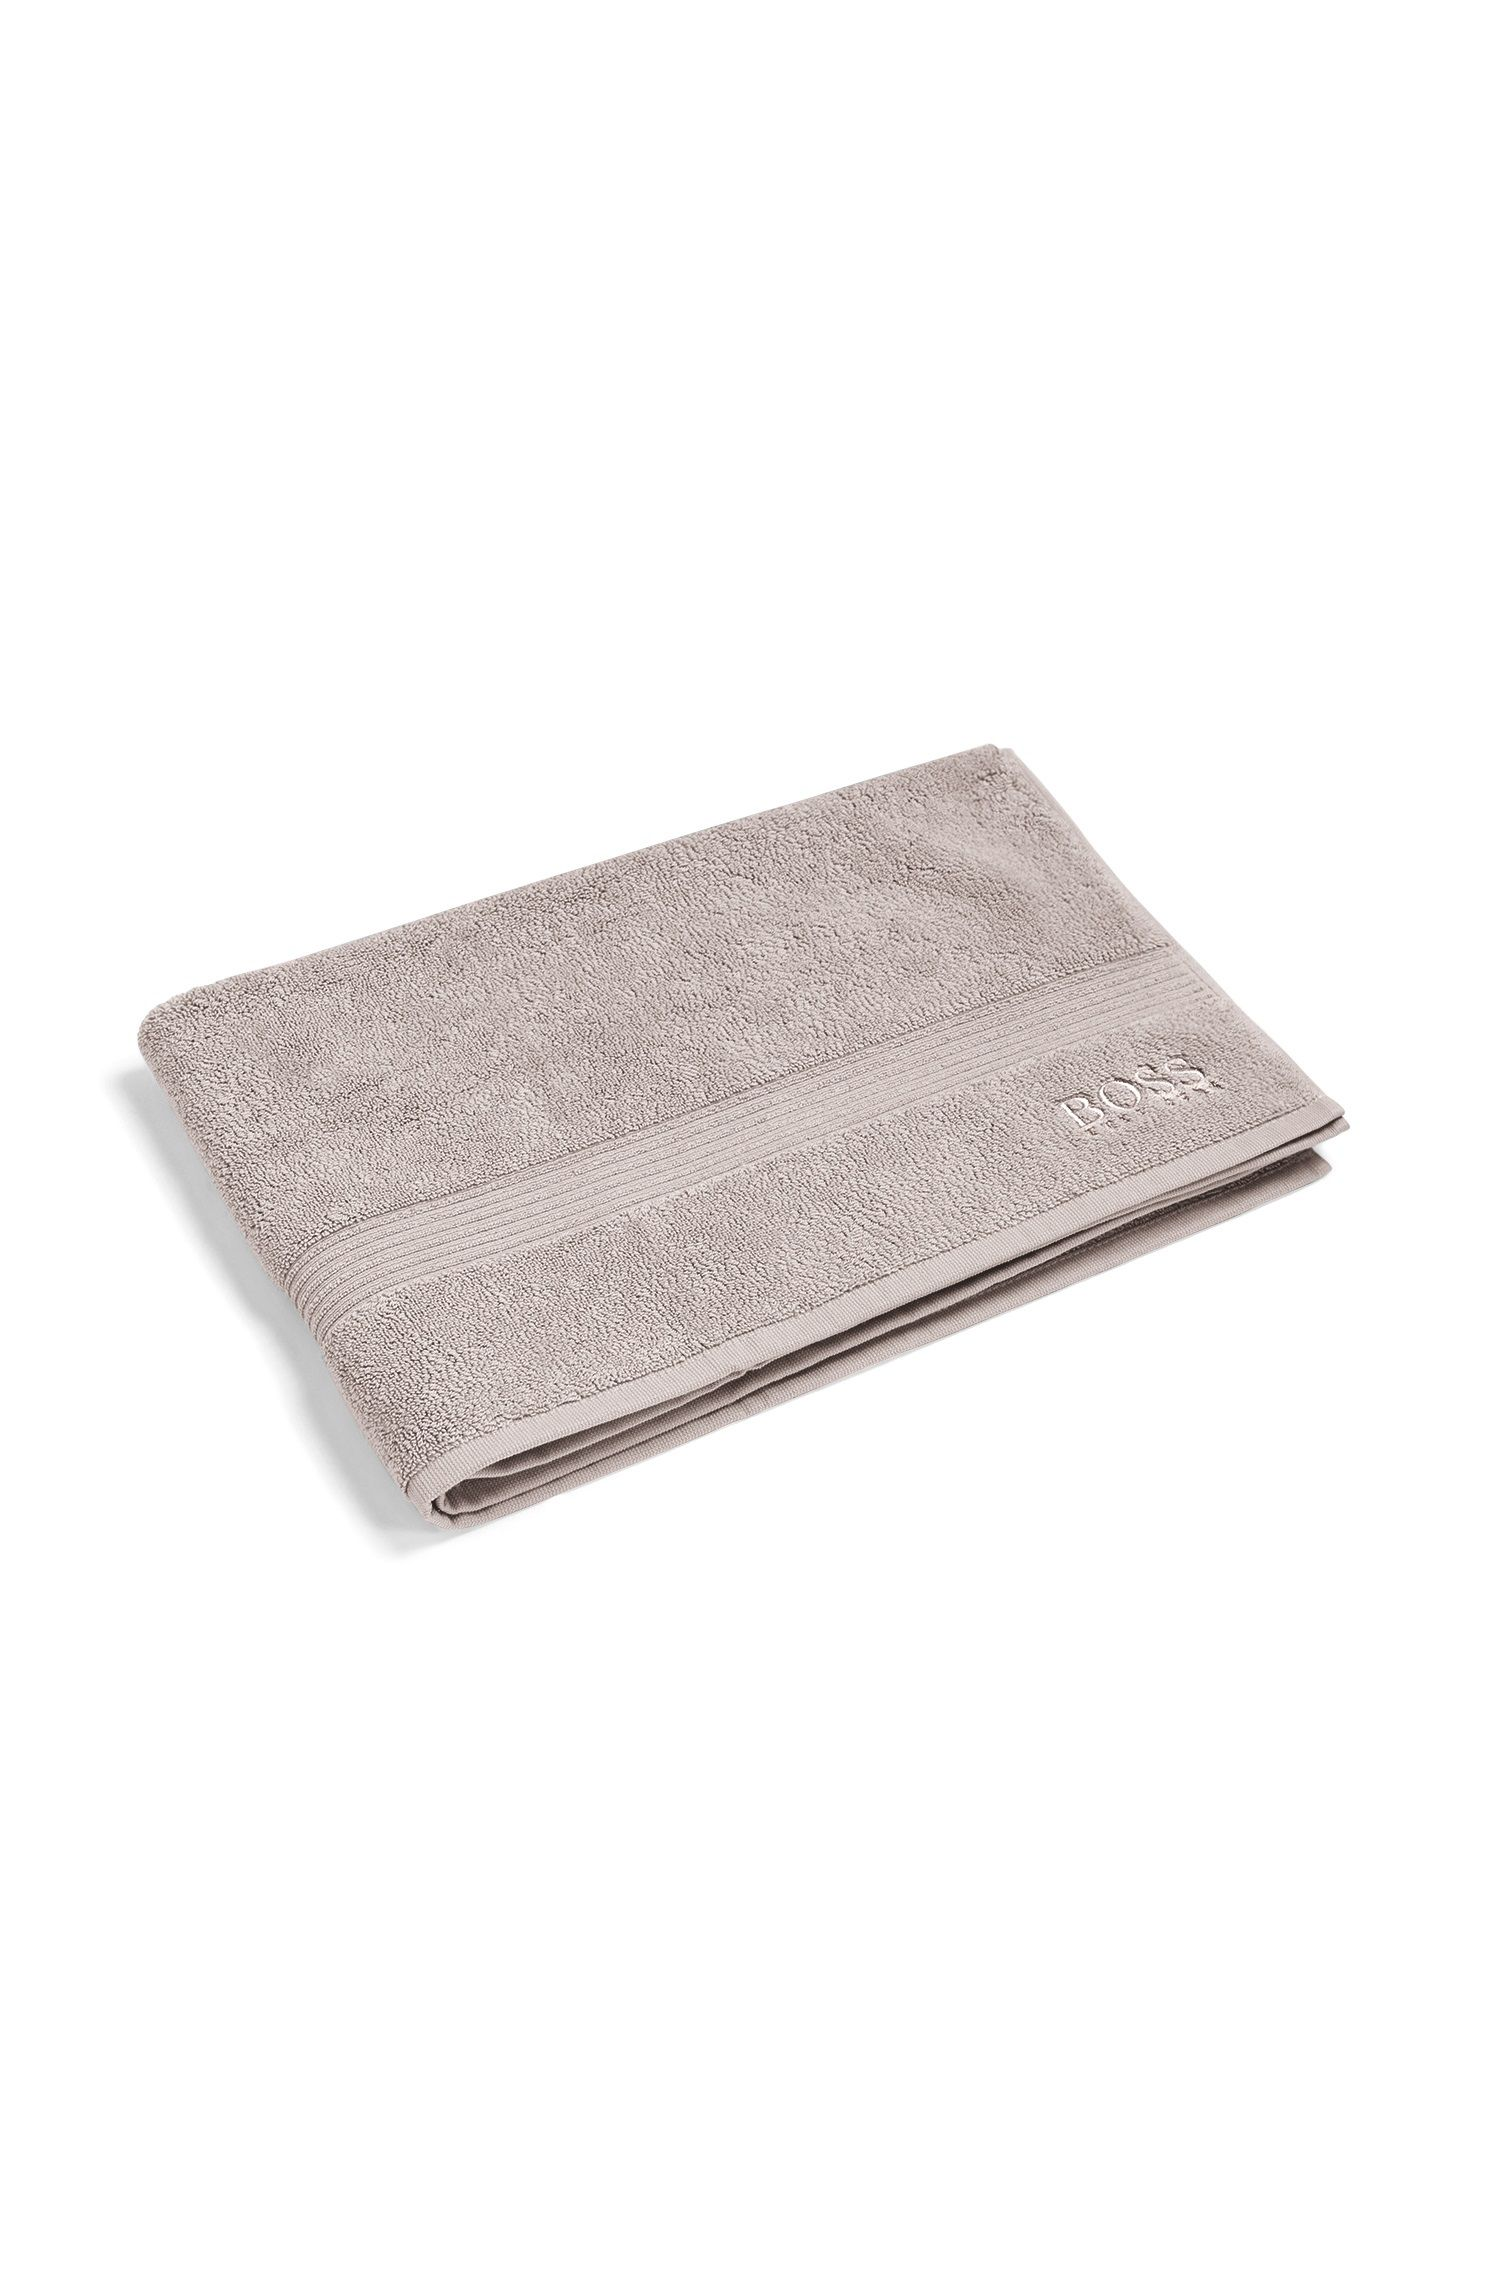 Bath mat ´LOFT Tapis de bain` in cotton terry